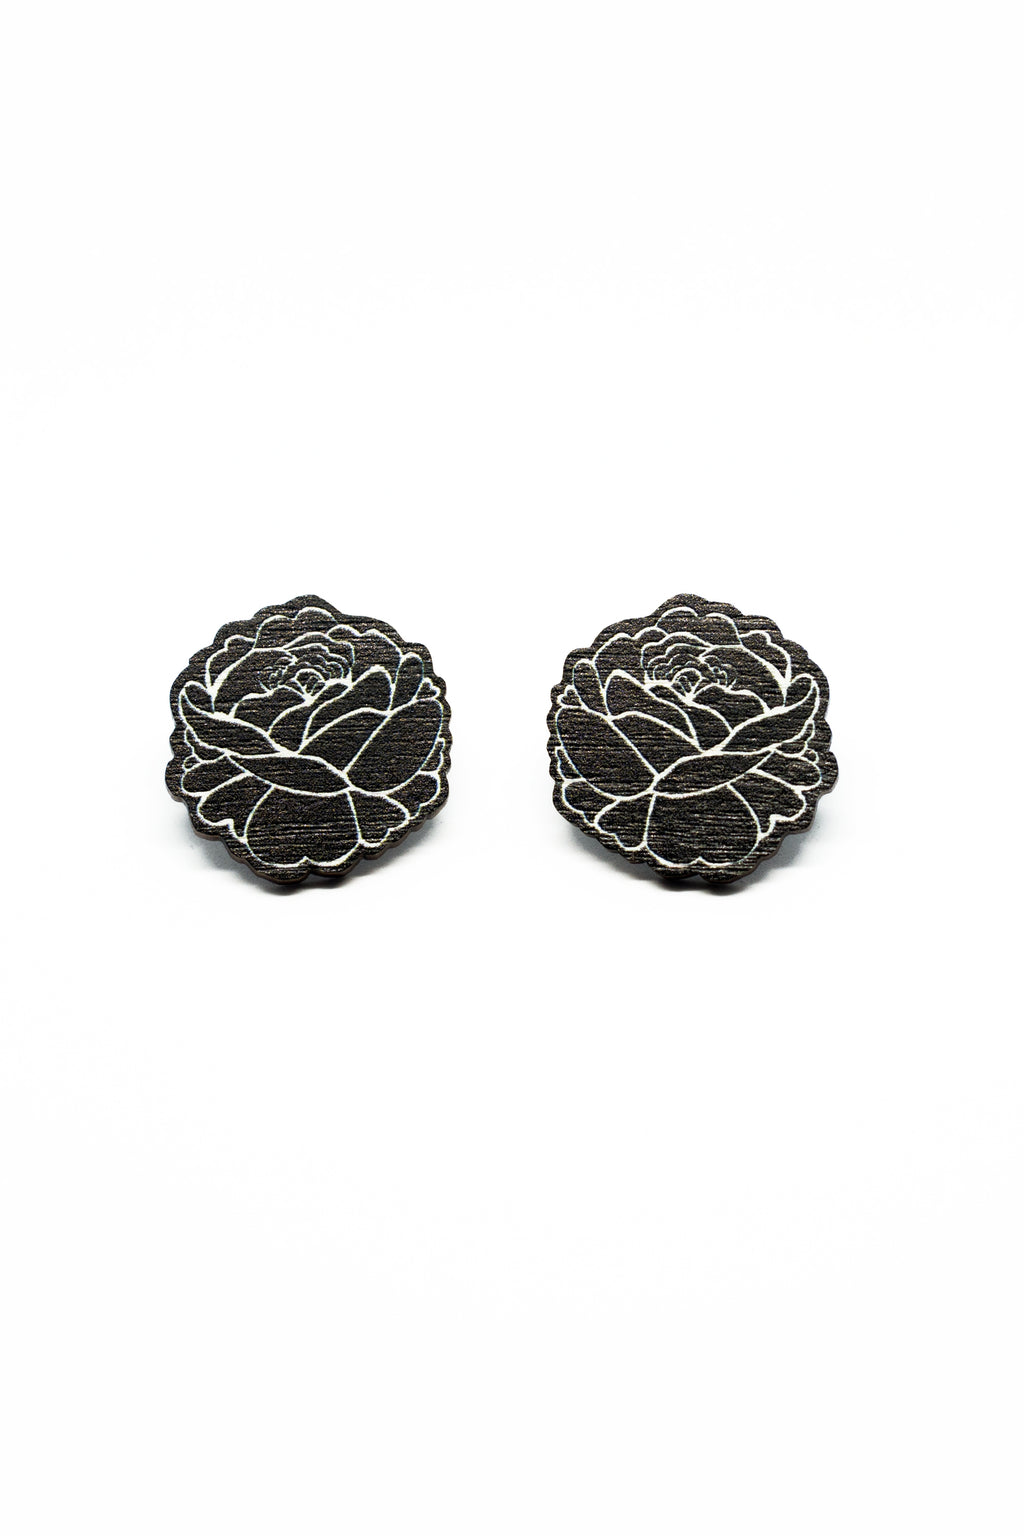 Black Rose Stud Earrings, Wood